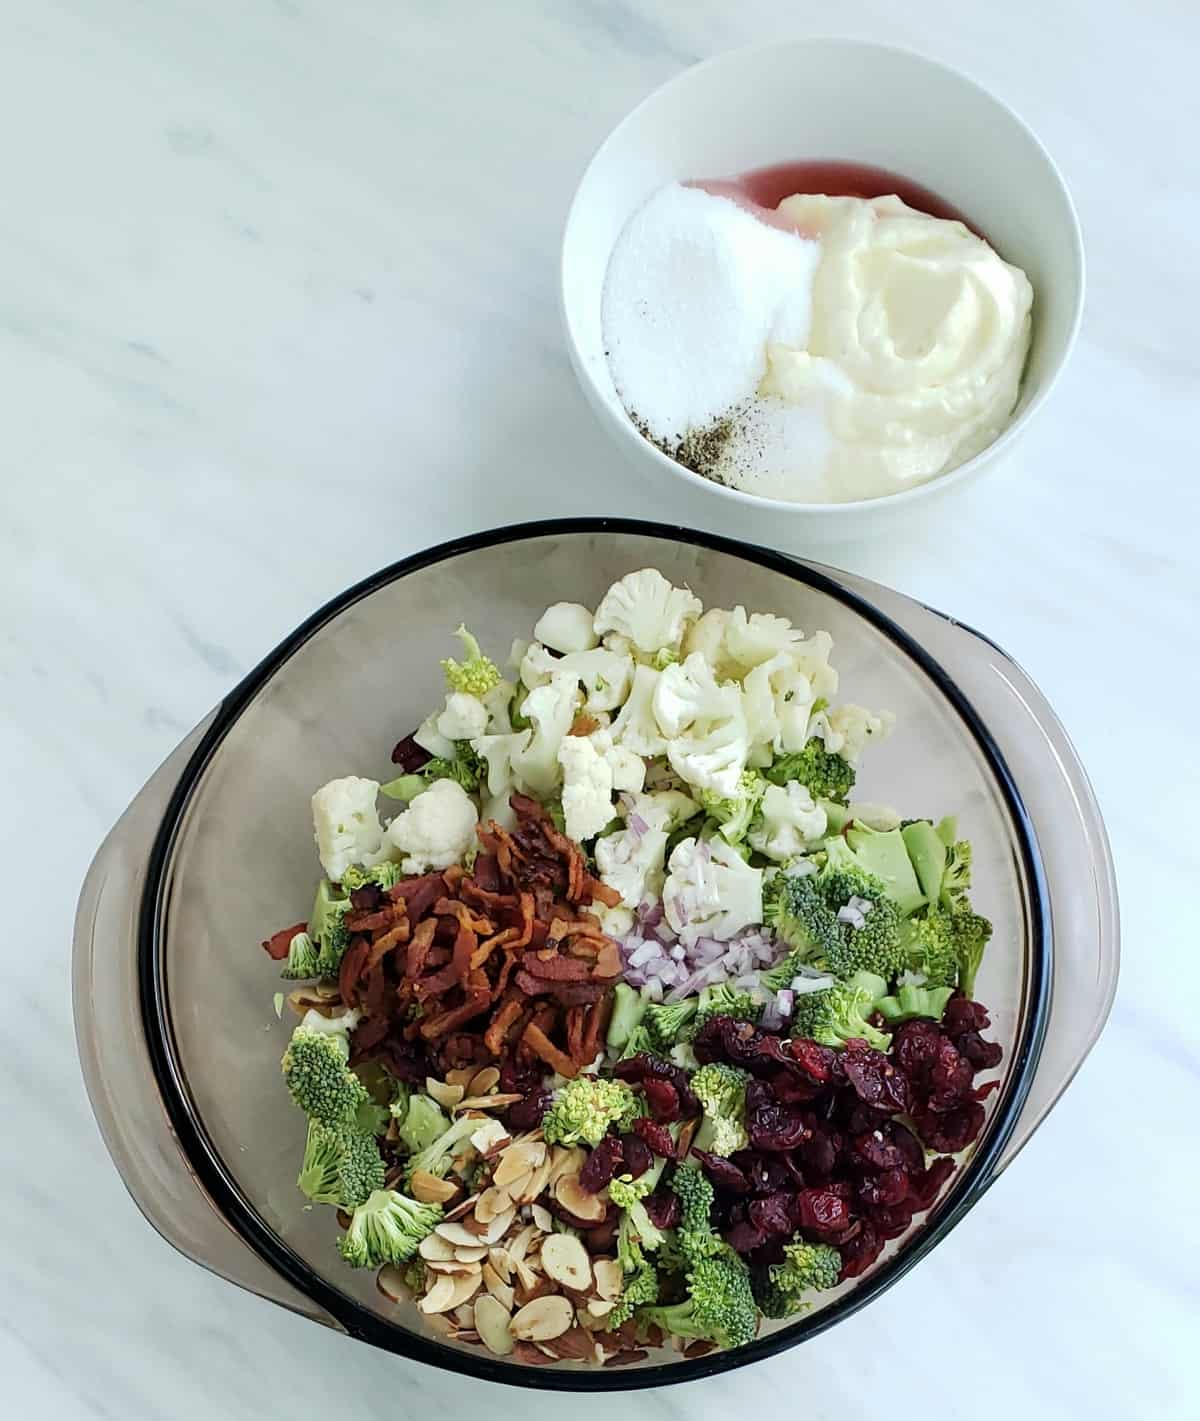 All salad ingredients for this recipe neatly separated in a bowl with dressing ingredients in a smaller bowl